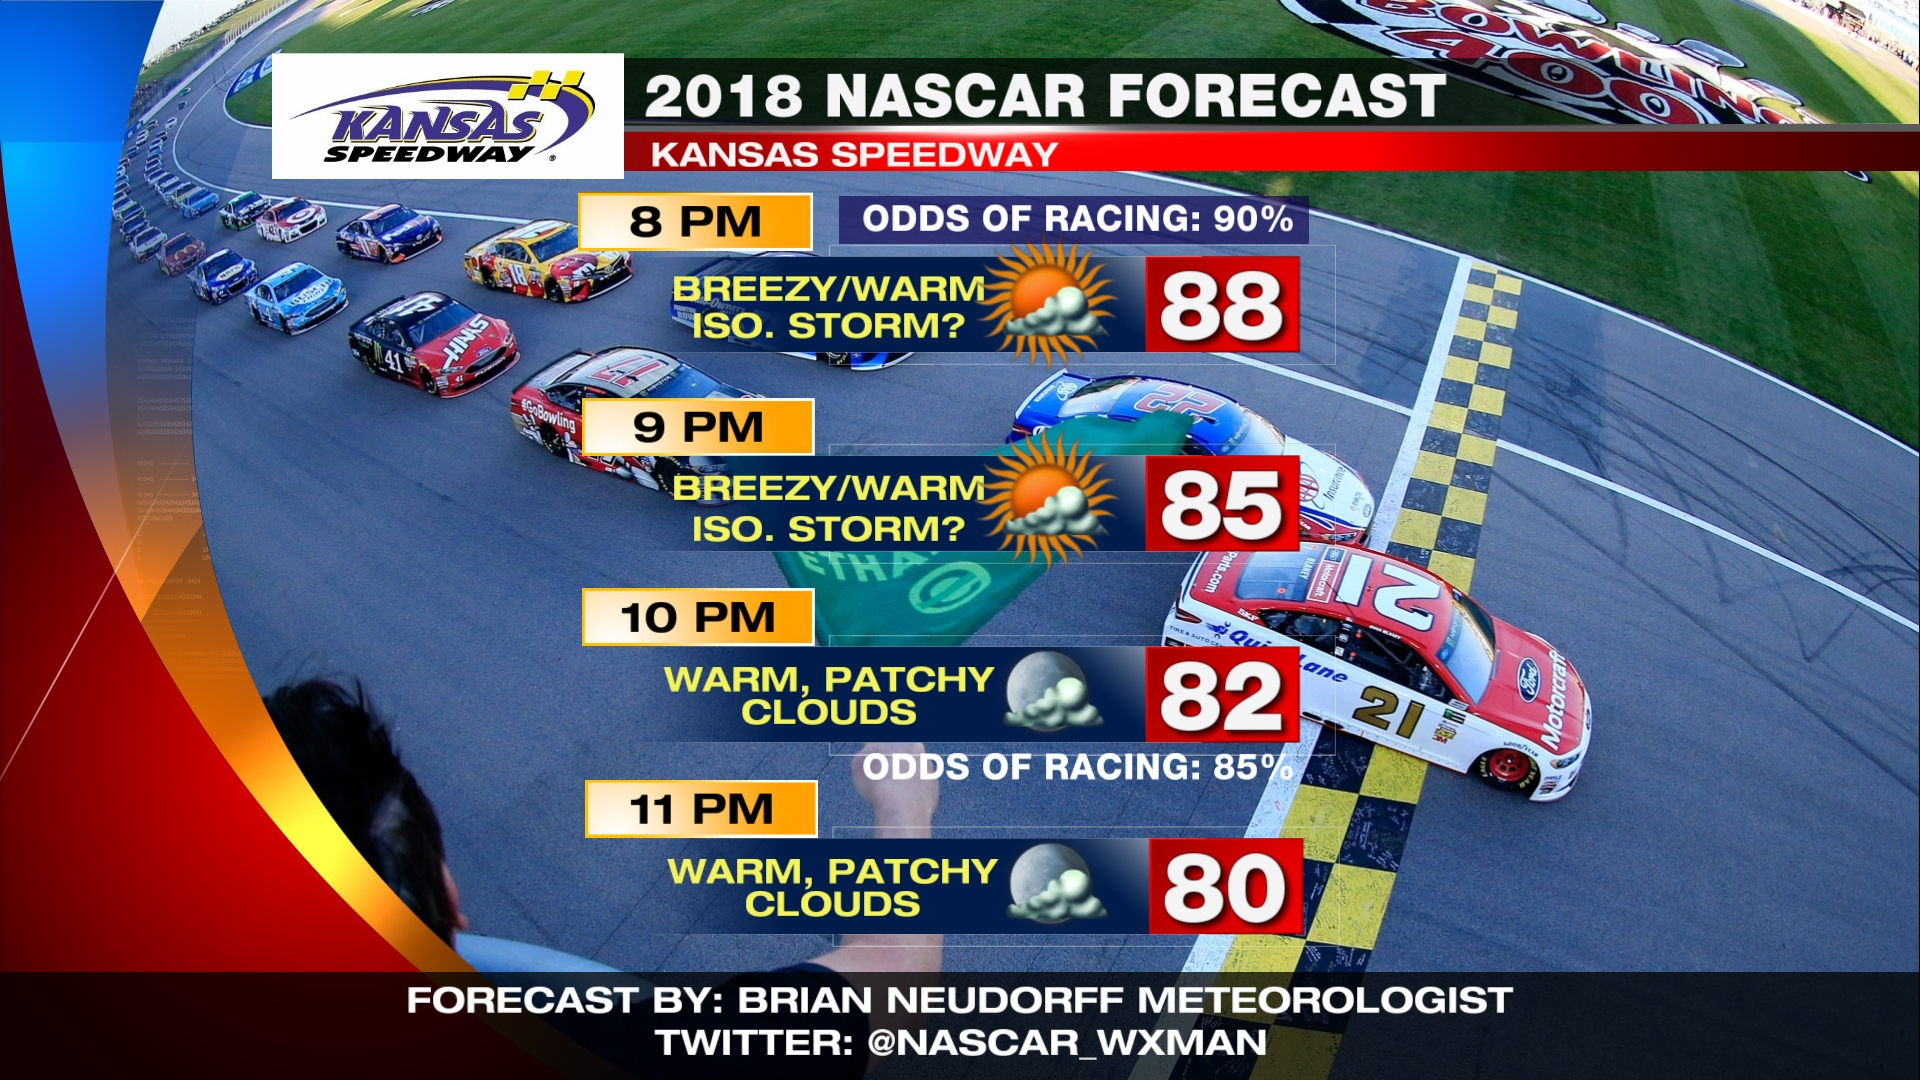 More dry than wet for Saturday night NASCAR racing at Kansas Speedway